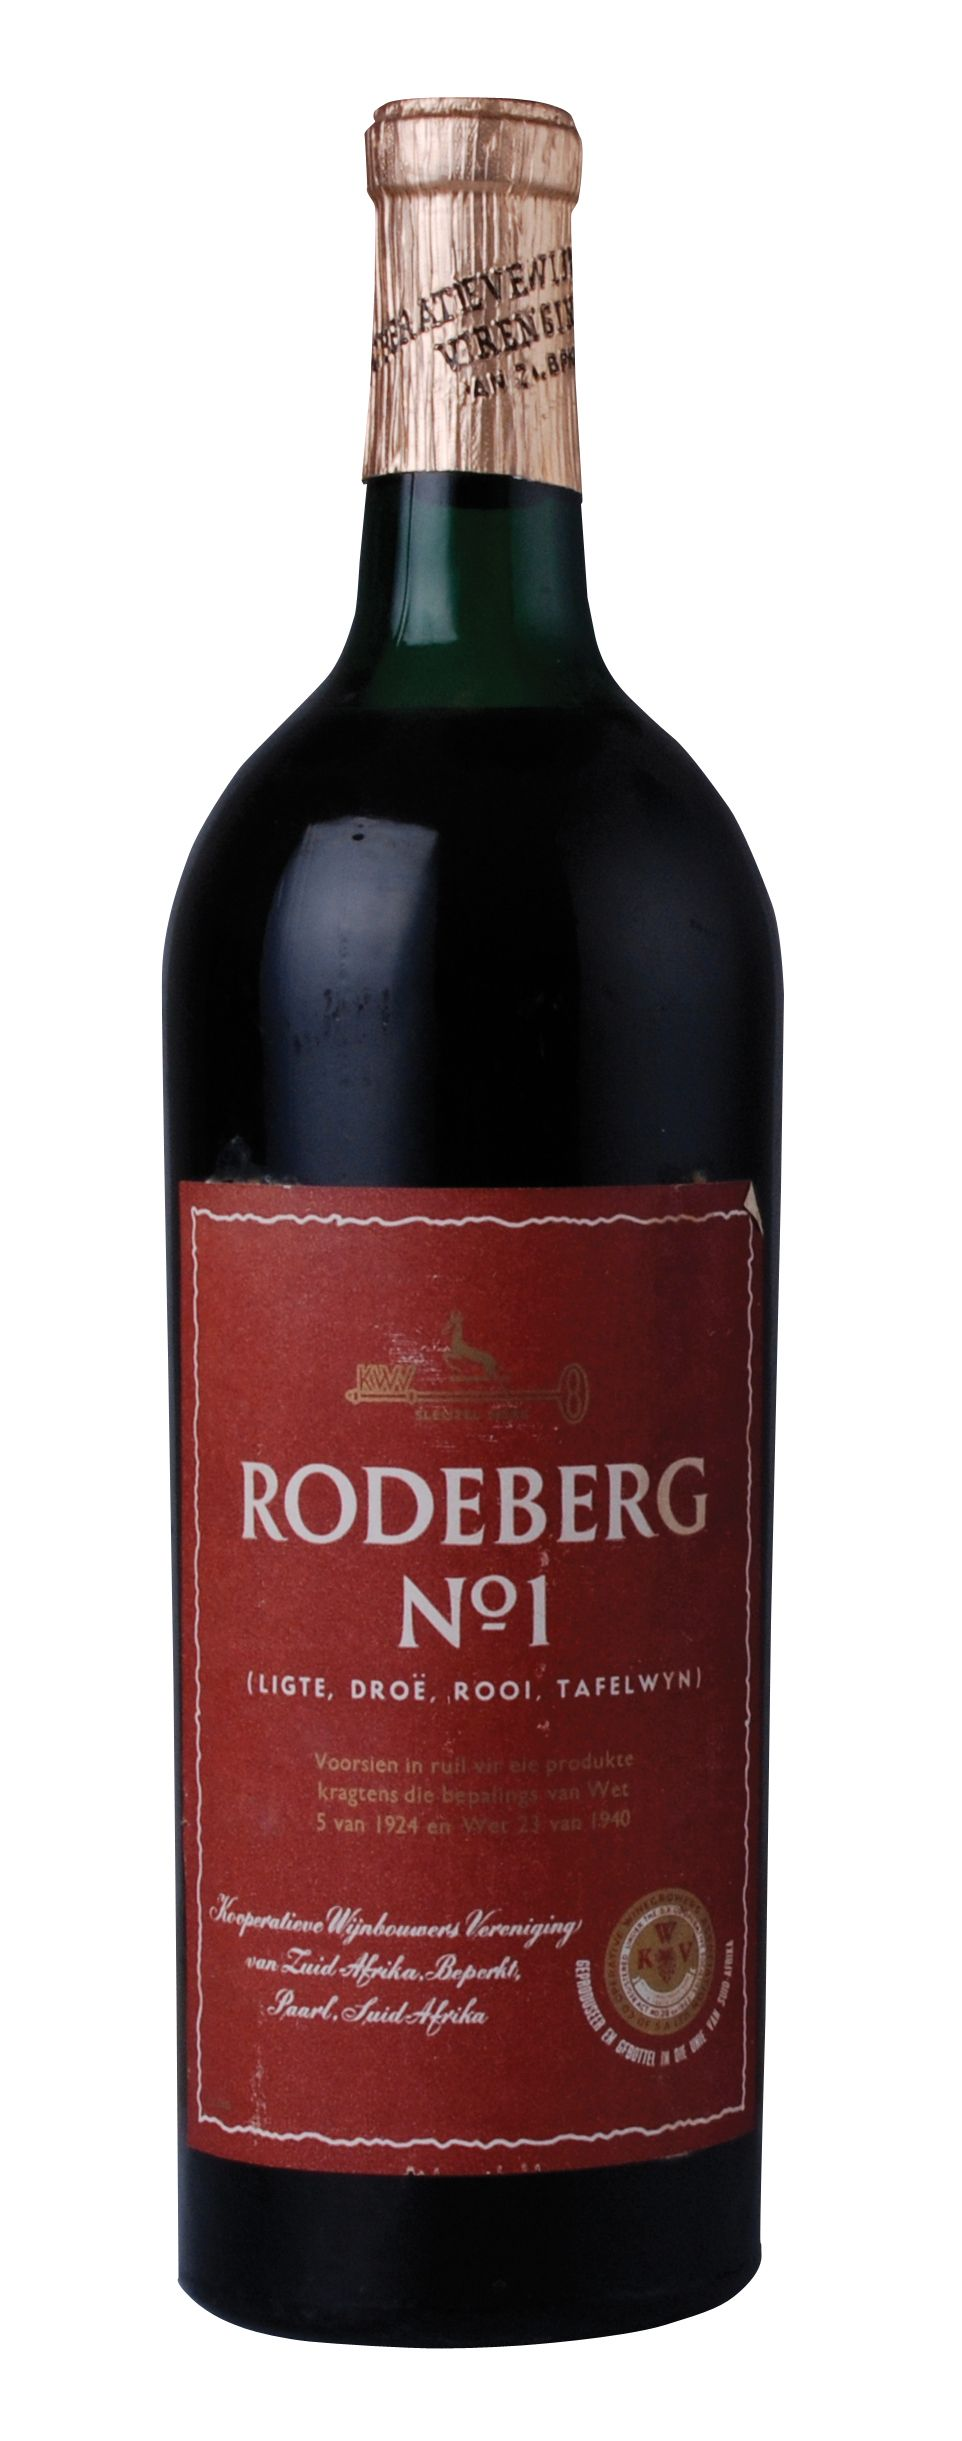 Roodeberg No1 South African Wine Bottle Label Design Water Recipes